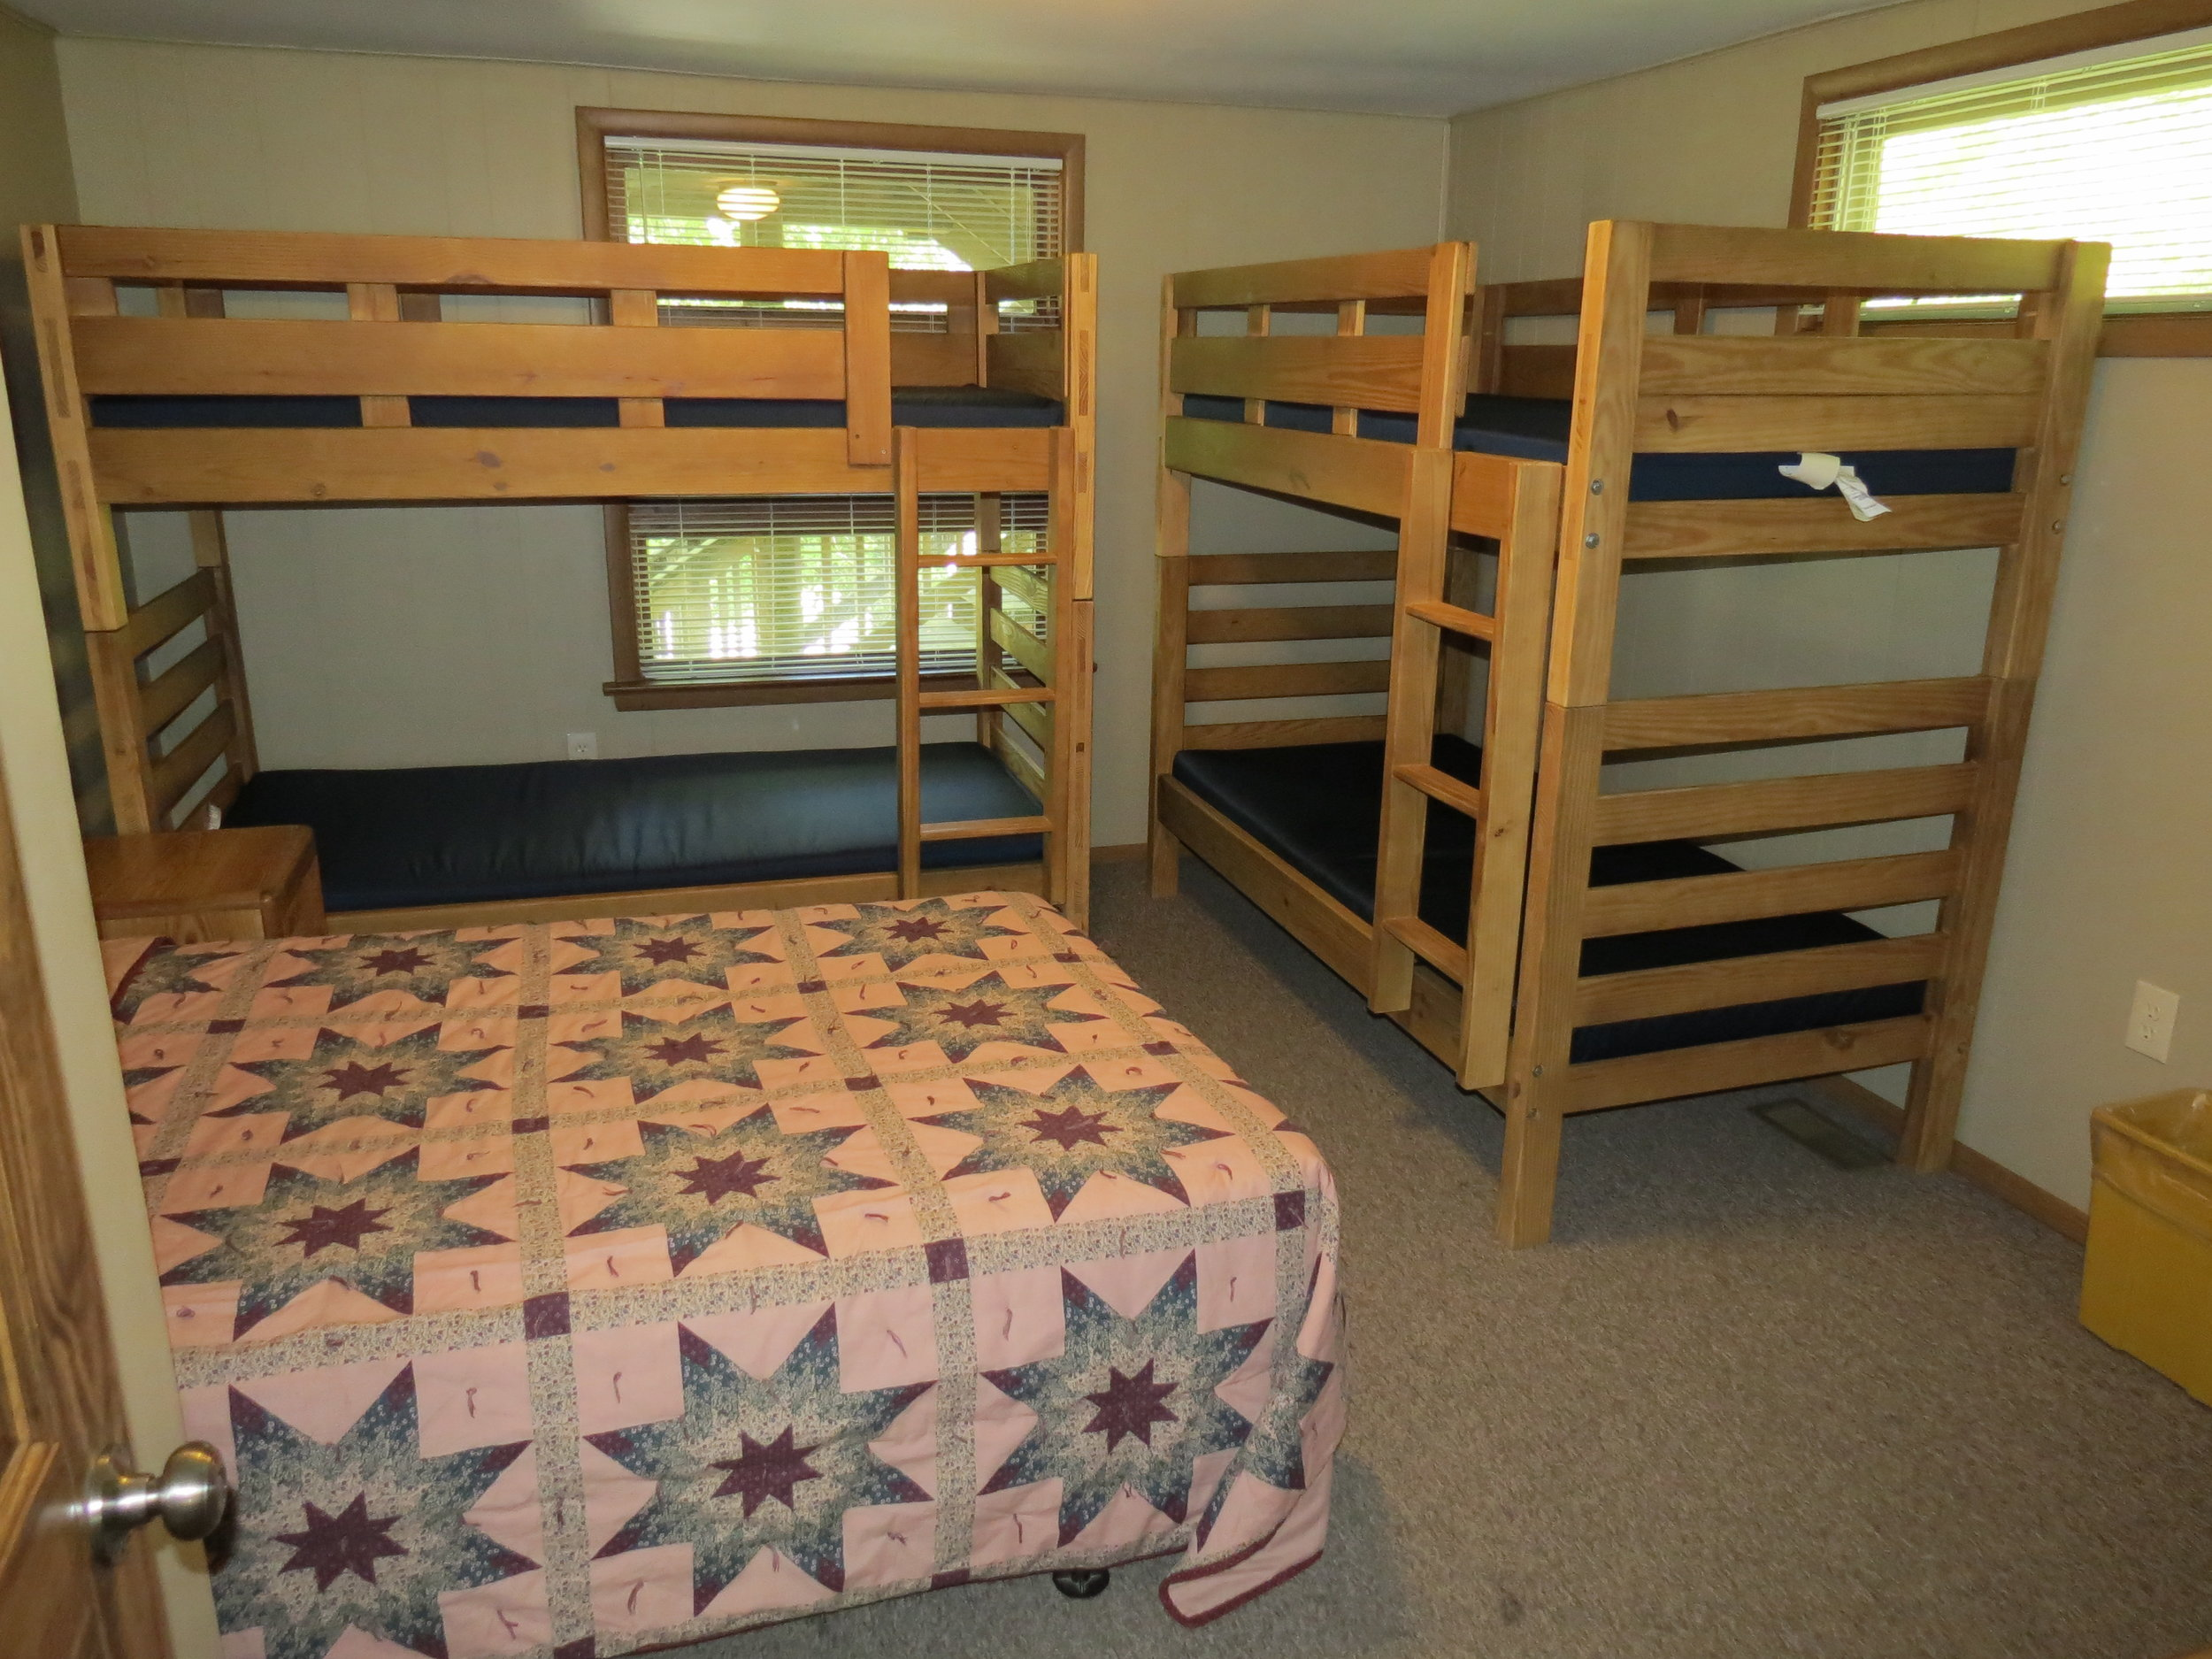 09-26-2014-Spruce-Lodge-Bedrooms-02.JPG